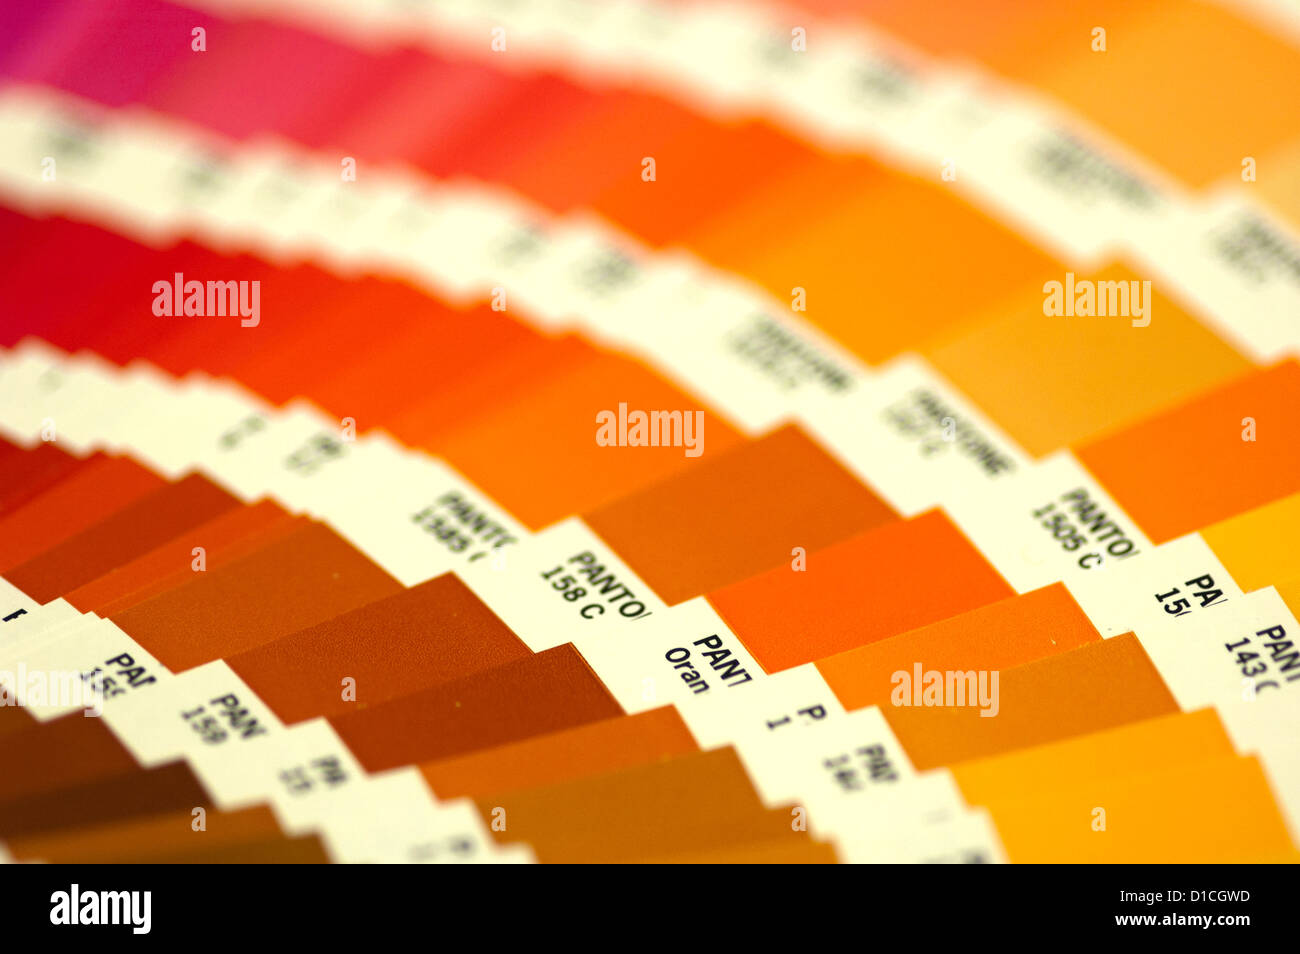 Color Swatch Book Stock Photos & Color Swatch Book Stock Images - Alamy